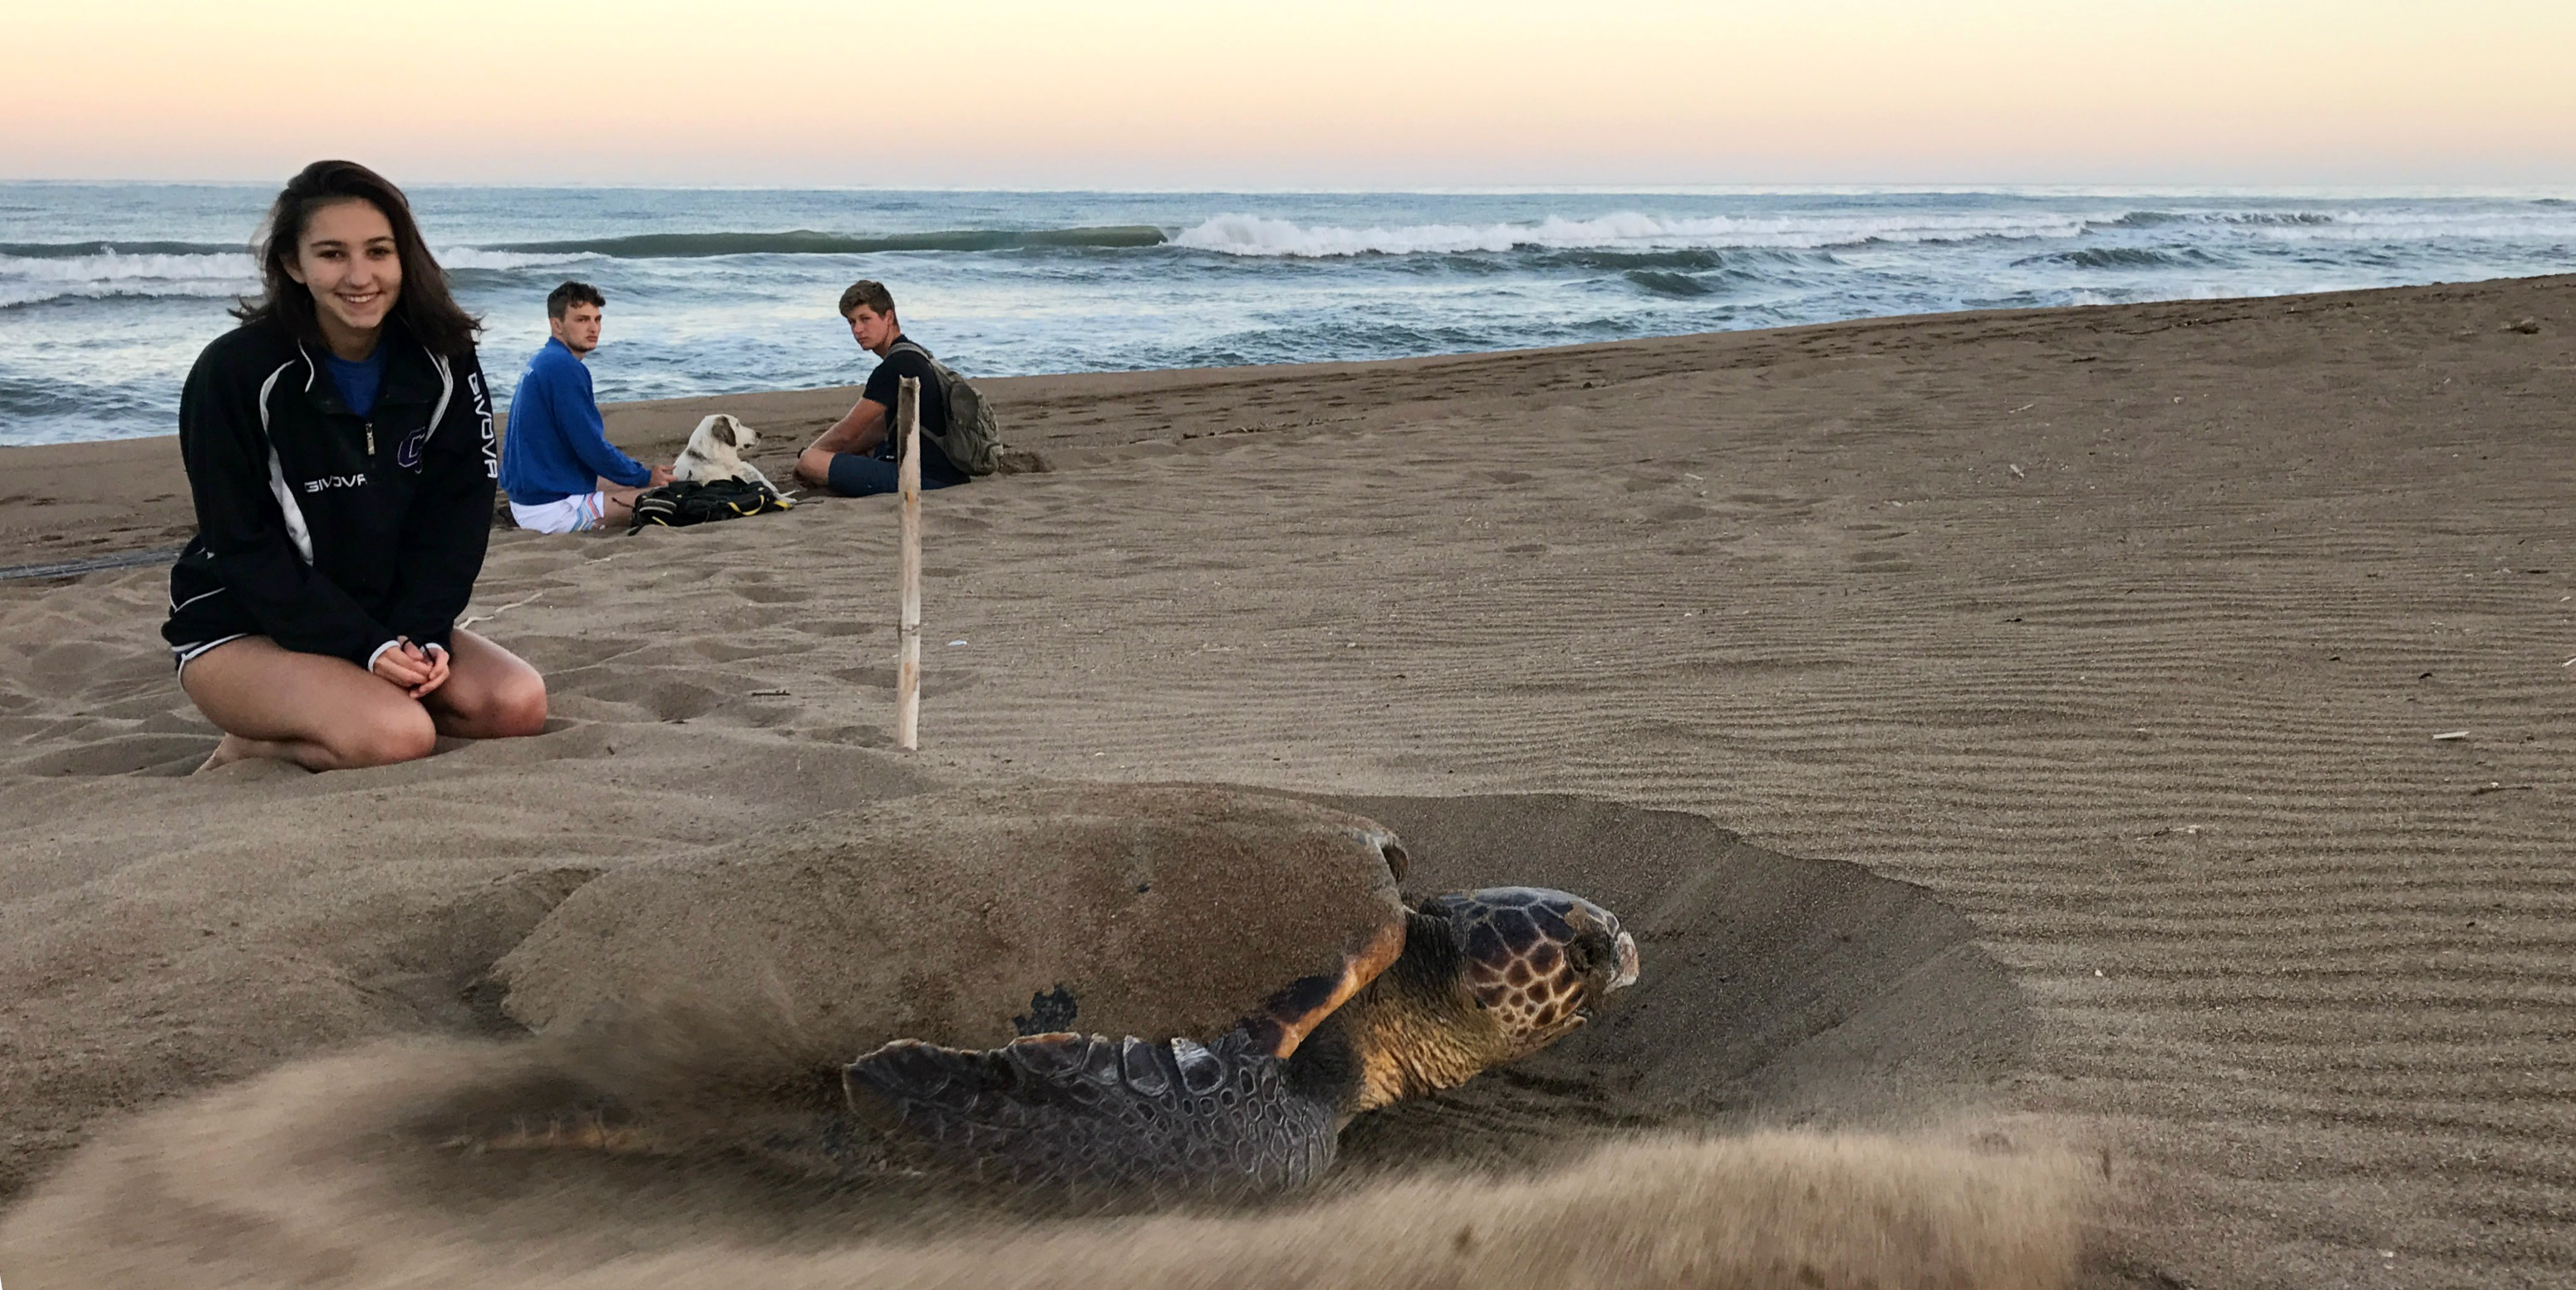 A participant takes part in one of GVI's gap year opportunities, by helping to monitor the nesting activity of endangered loggerhead turtles in Greece.